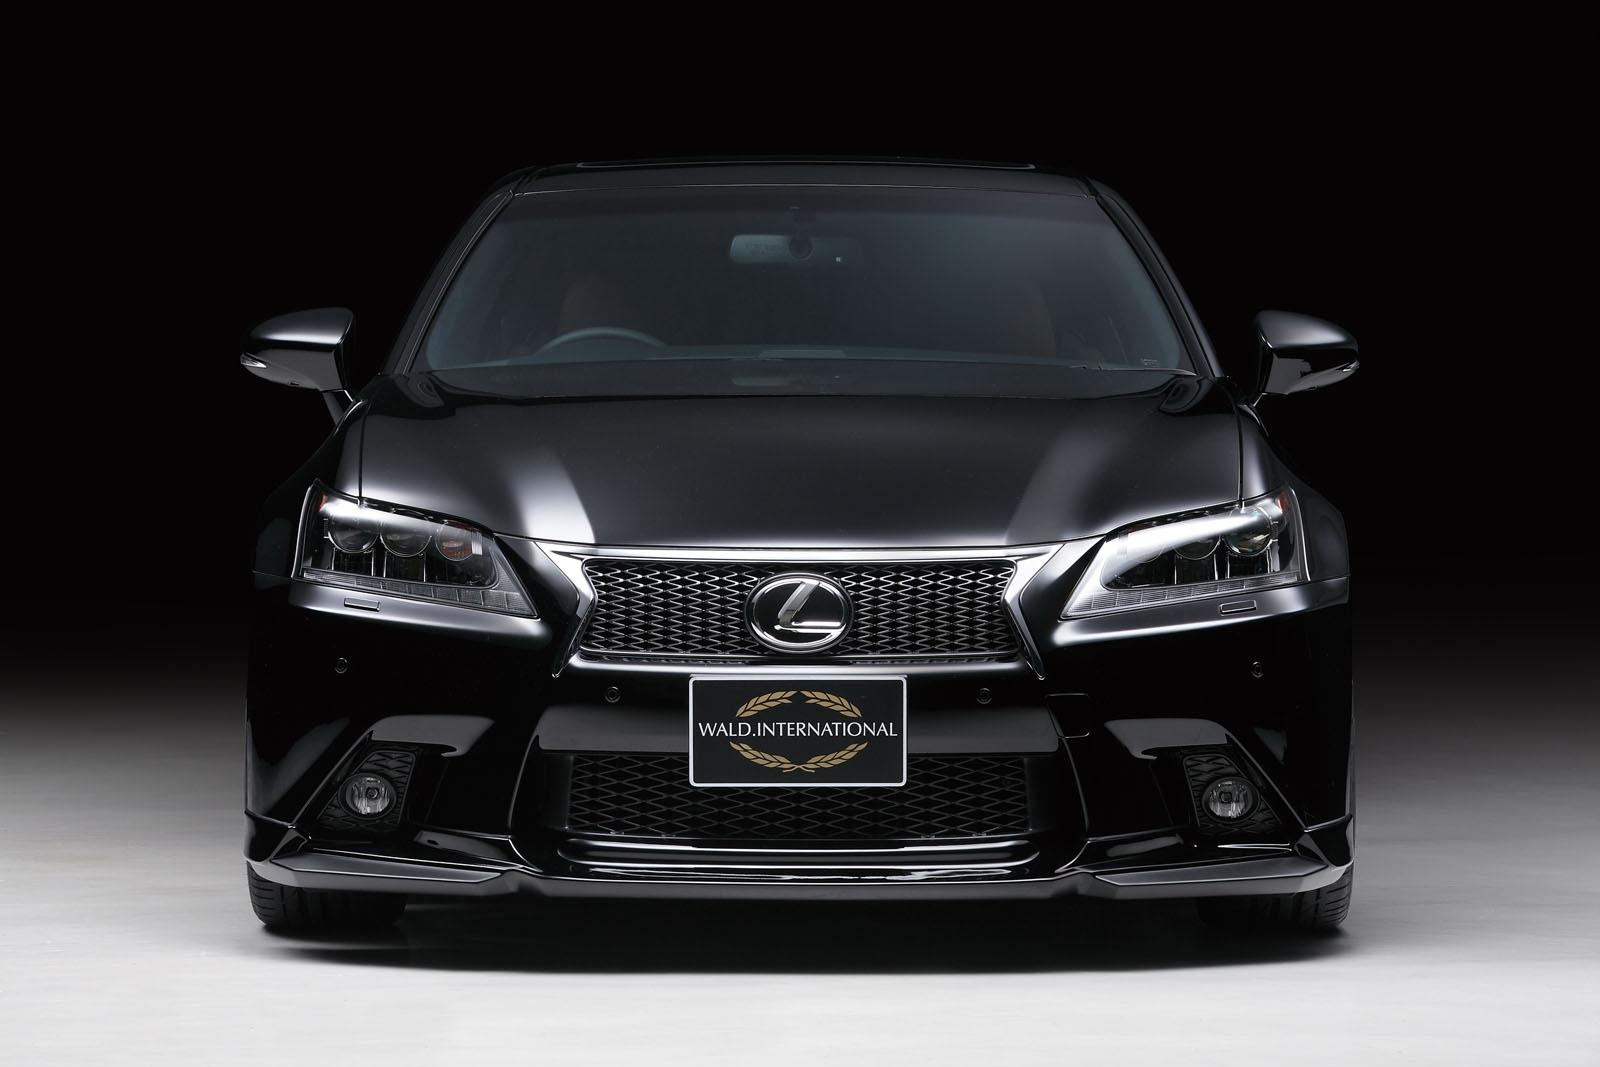 Have you ever seen this upgraded Lexus 2013 GS model? #4